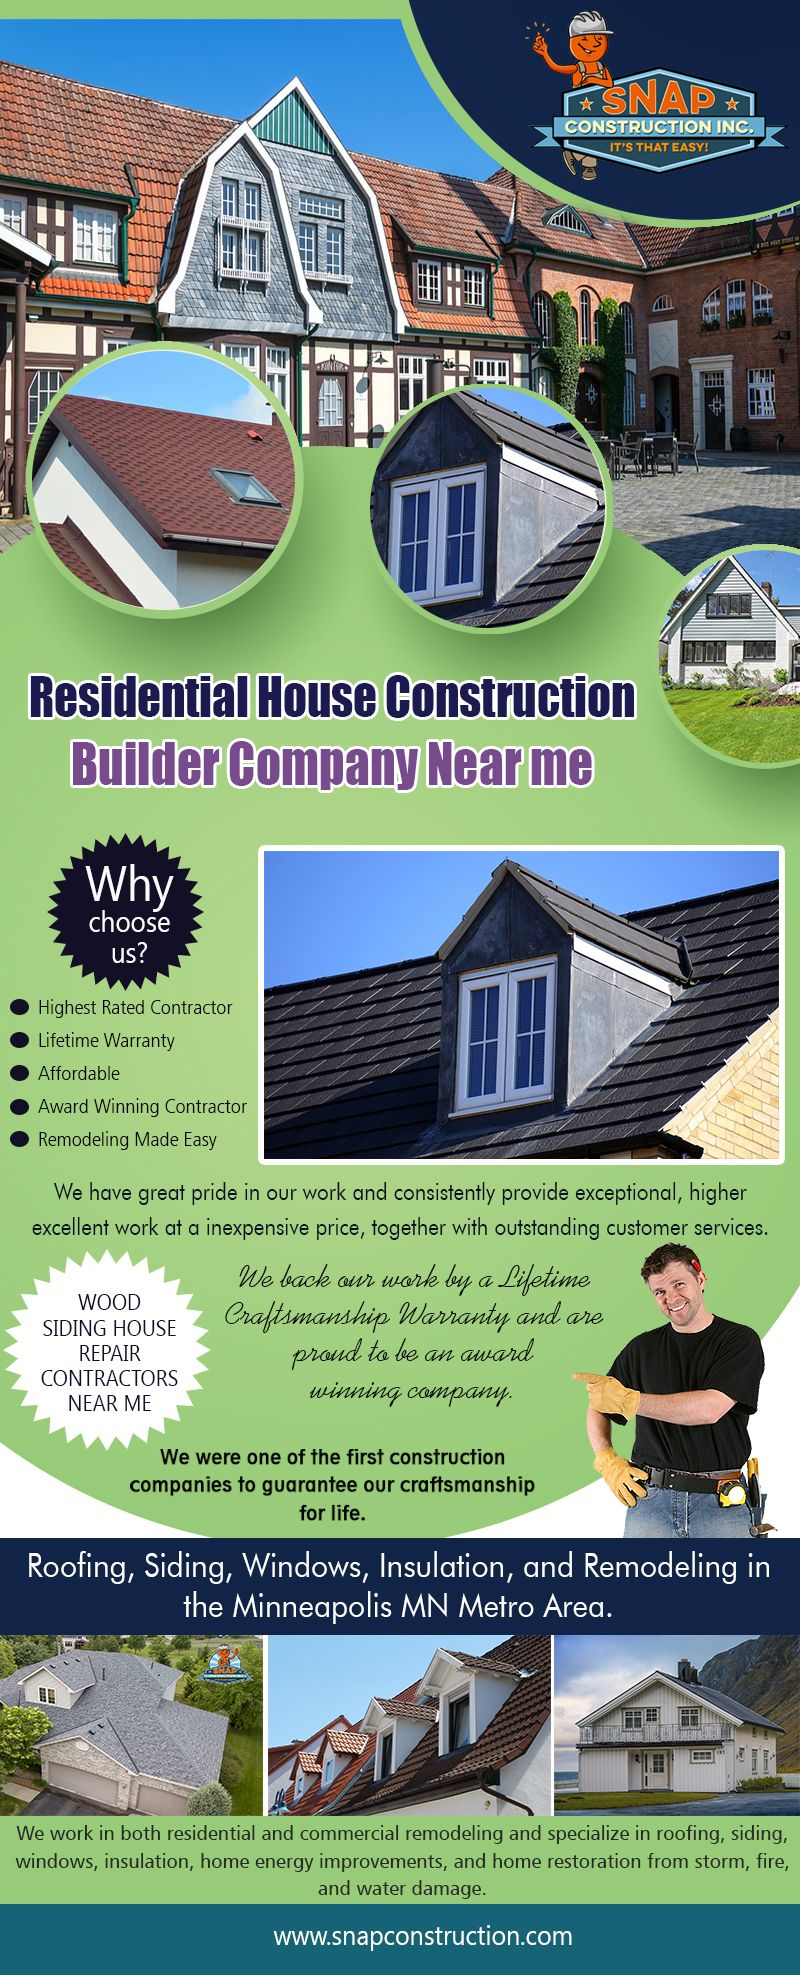 Residential House Construction Builder Company Near Minneapolis Construction Builders Home Construction Residential House